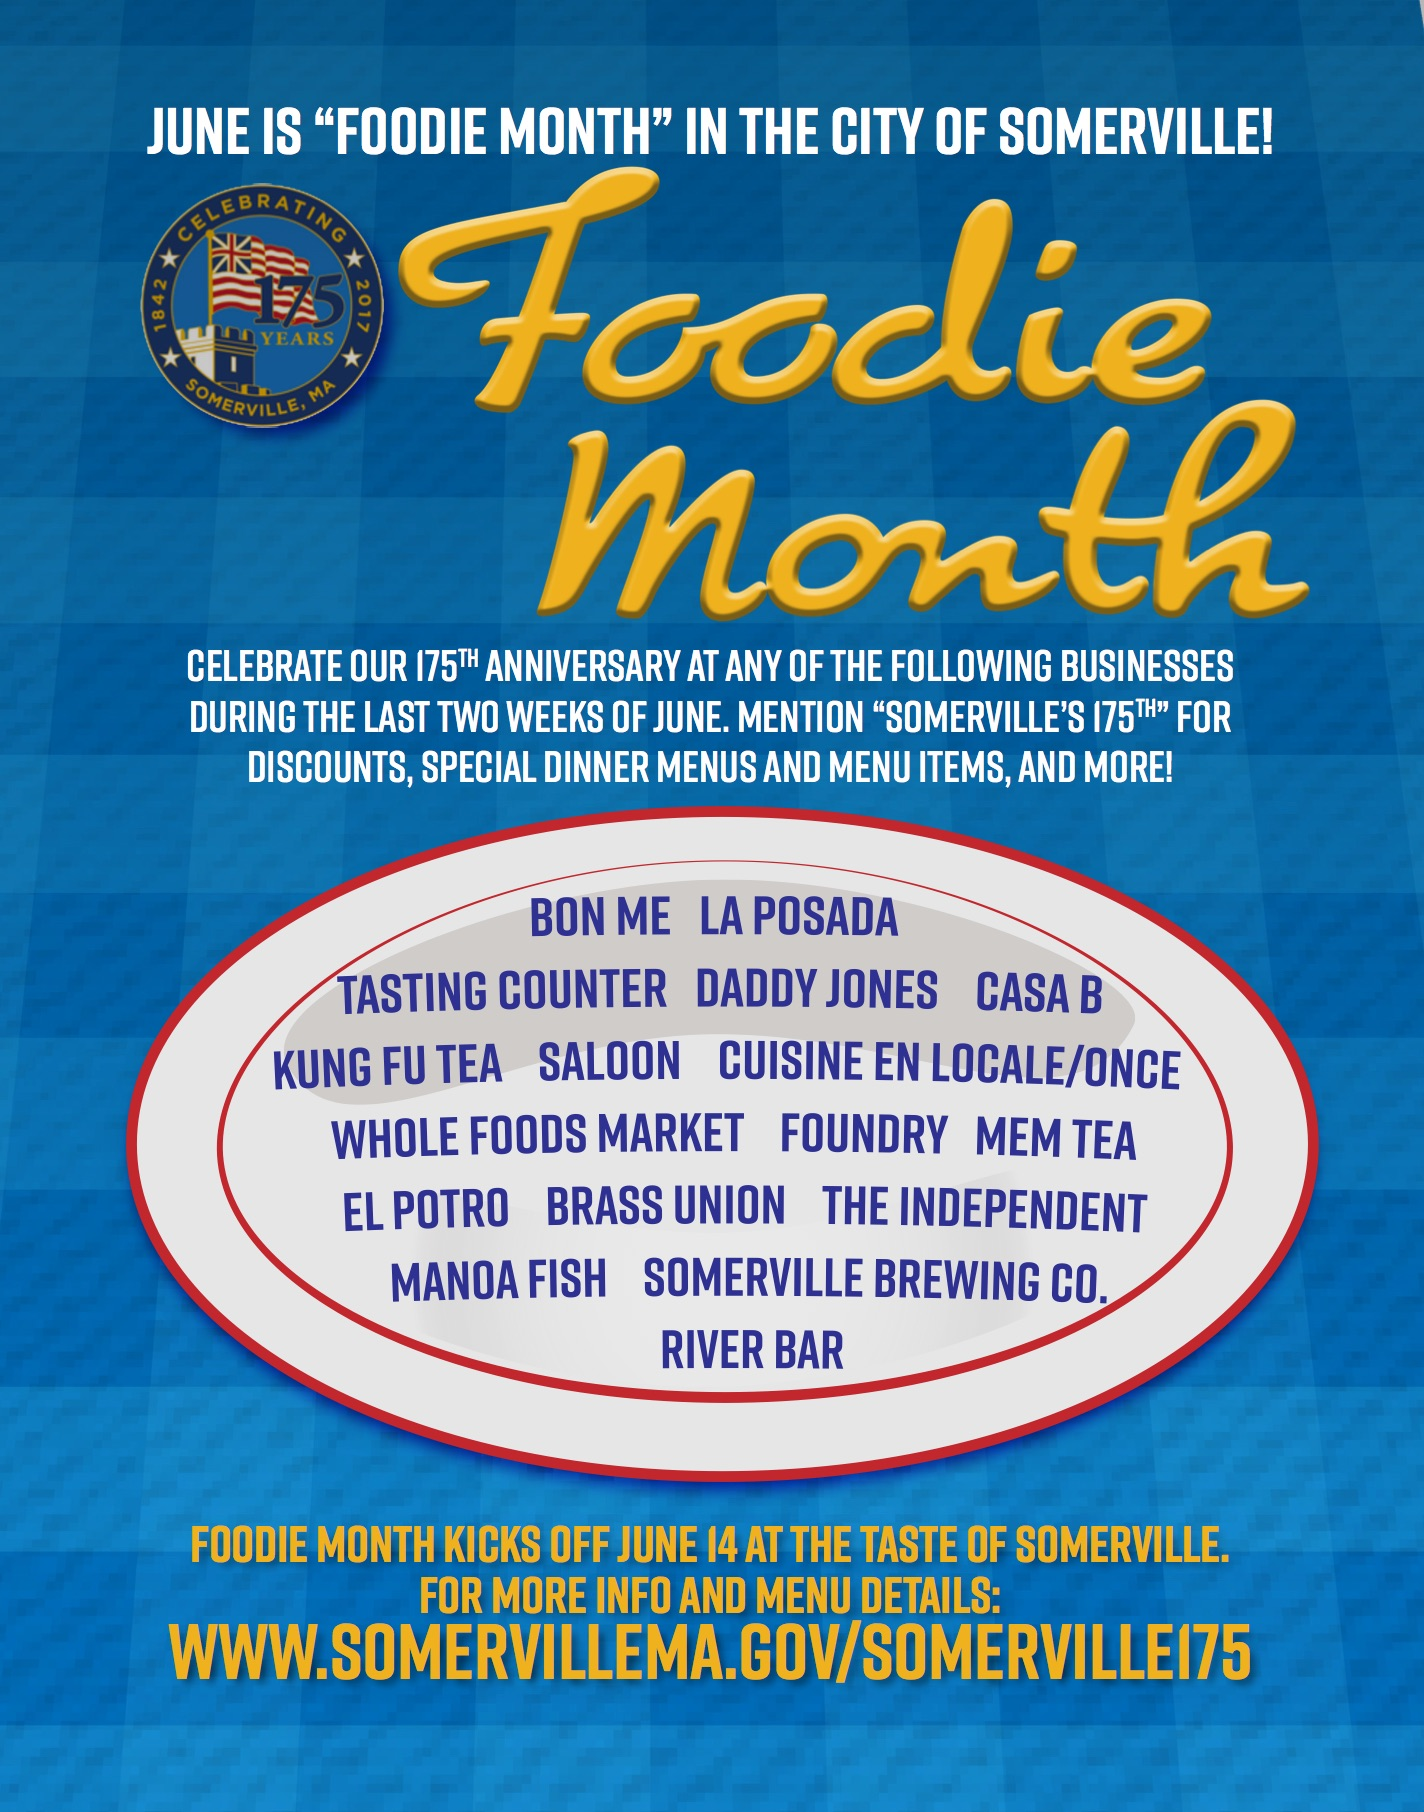 PDF preview links to Foodie Month flyer